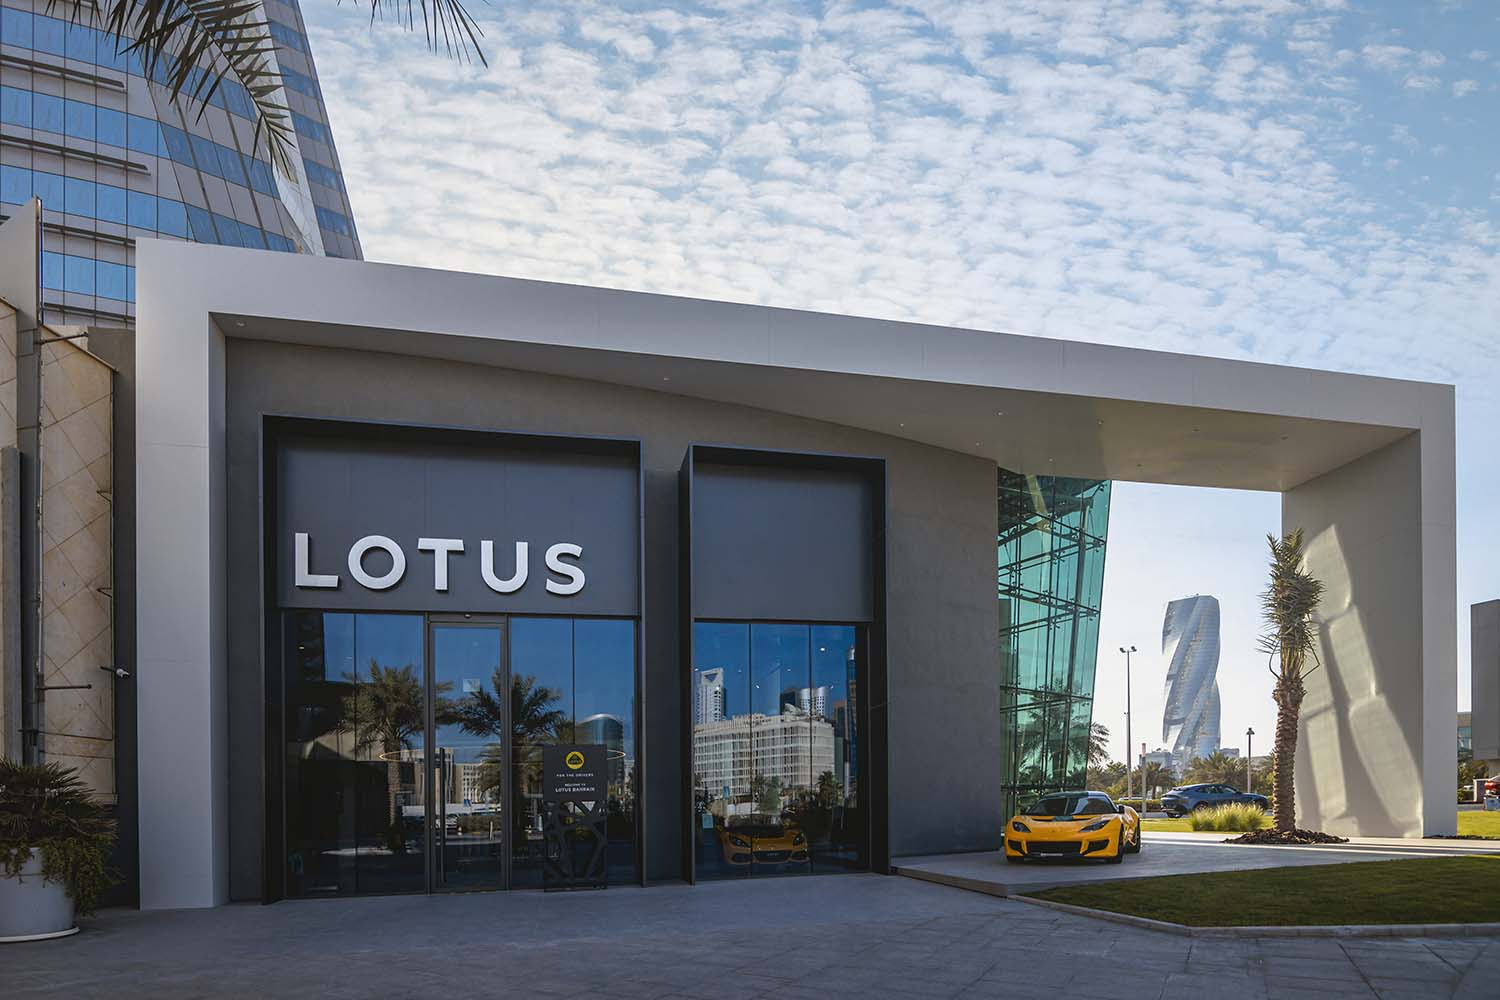 Another World Premiere From Lotus: First Showroom With New Global Retail Identity Now Open For Business